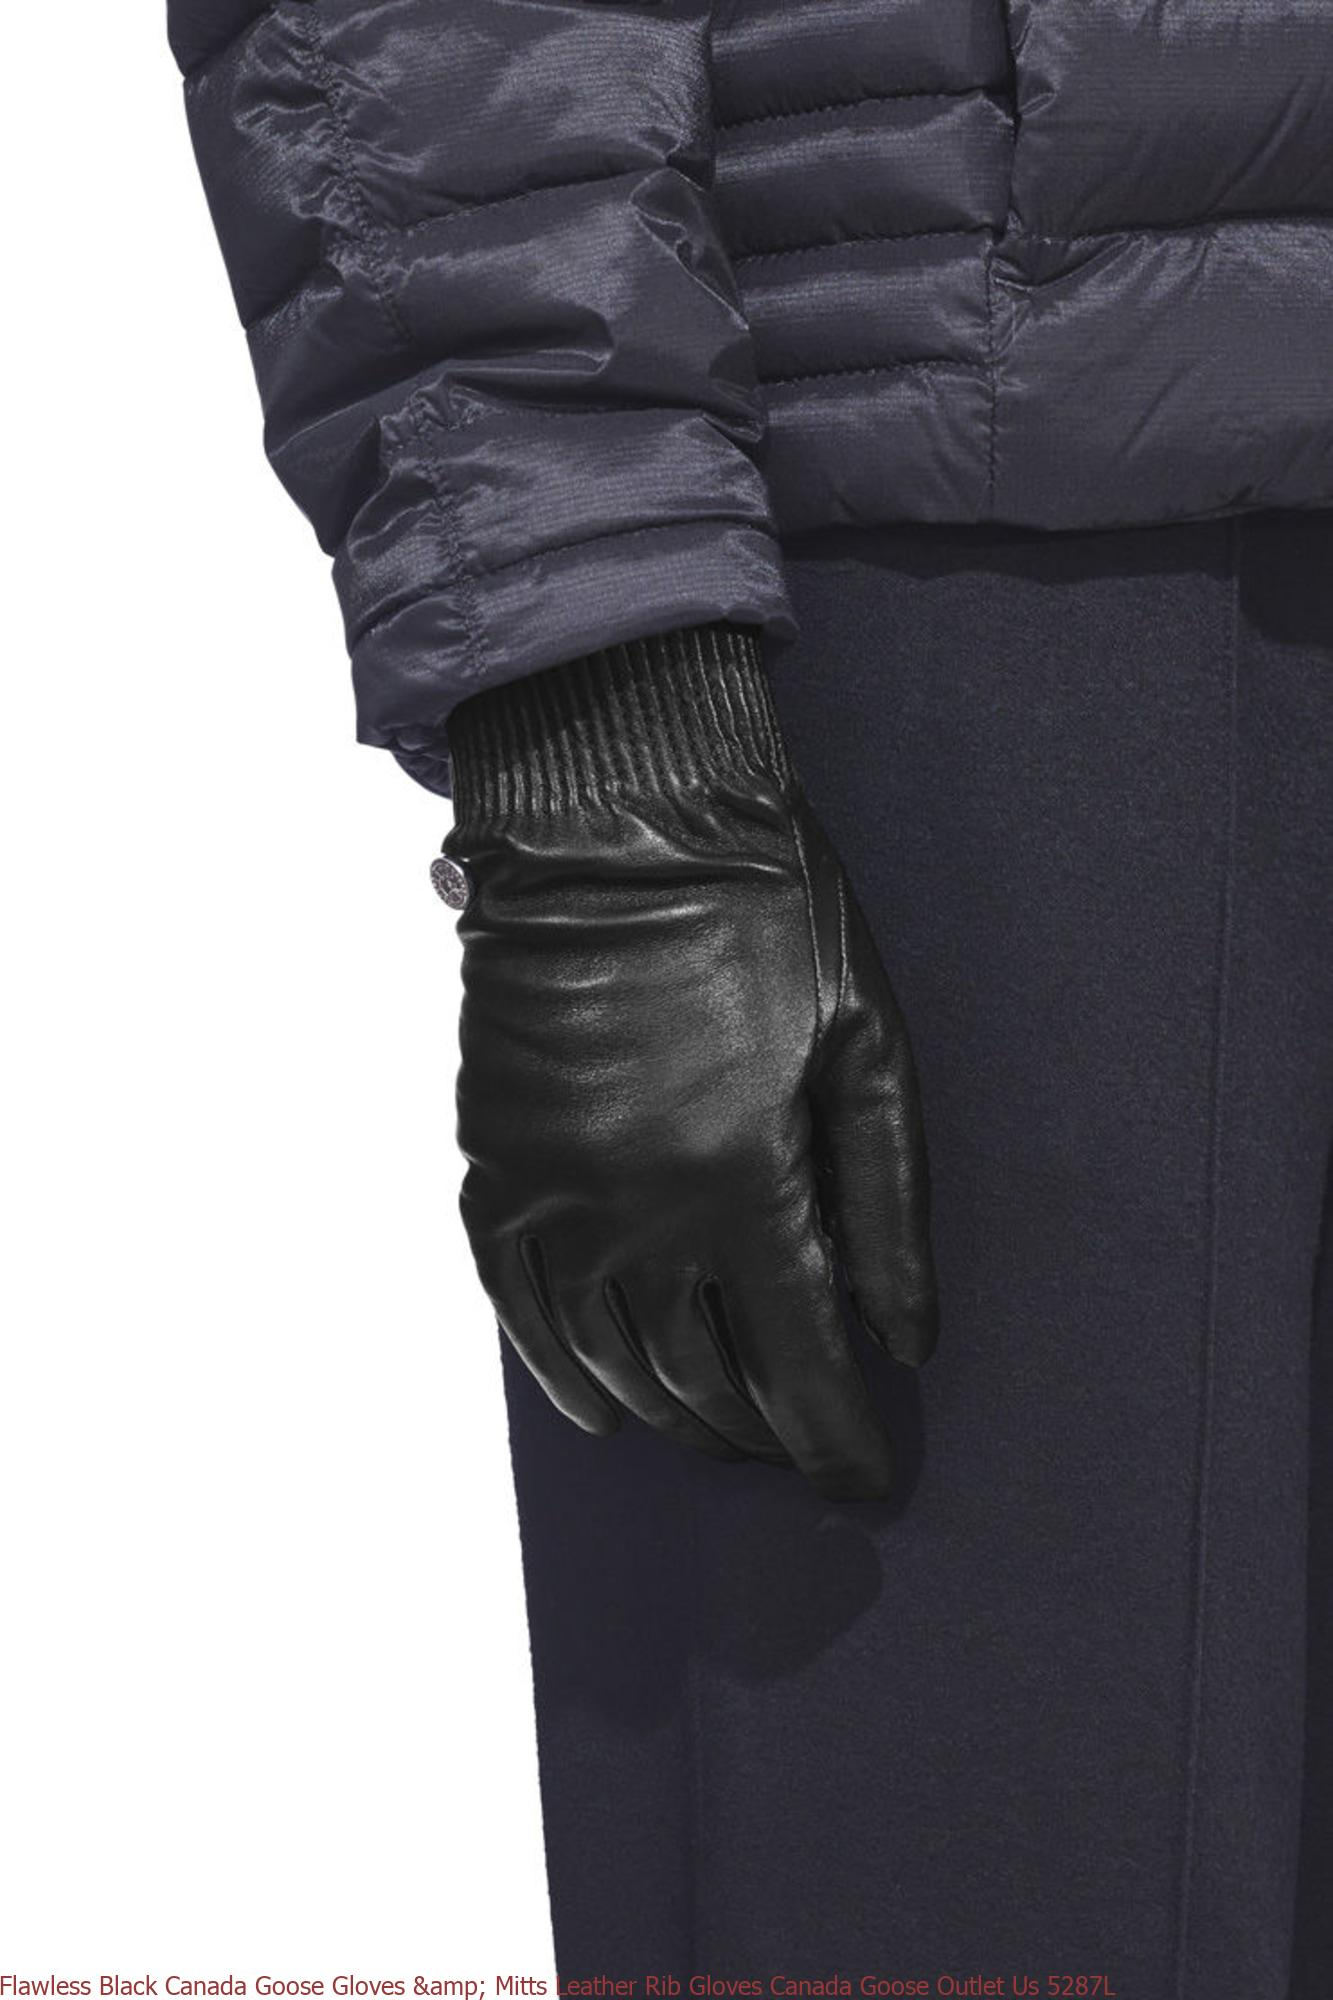 Flawless Black Canada Goose Gloves Mitts Leather Rib